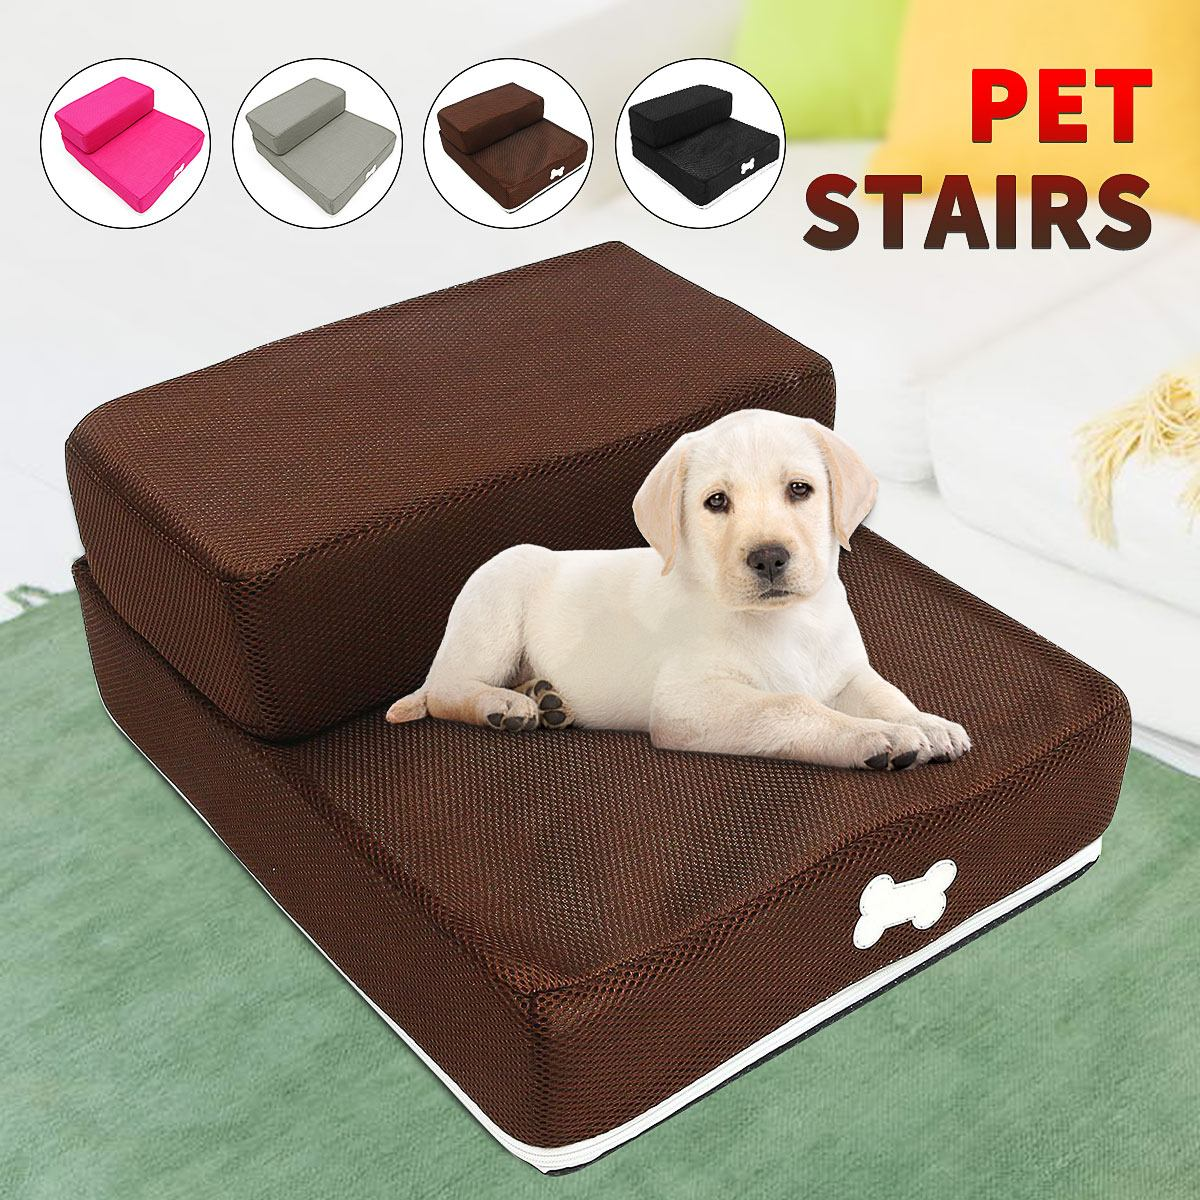 Pet Dog Jump Stairs Foldable Mesh Dog Ramp 2 Steps Ladder for Small Dogs Puppy Cat Bed Cushion Mat Mattress Breathable Mesh|Houses, Kennels & Pens|   - AliExpress